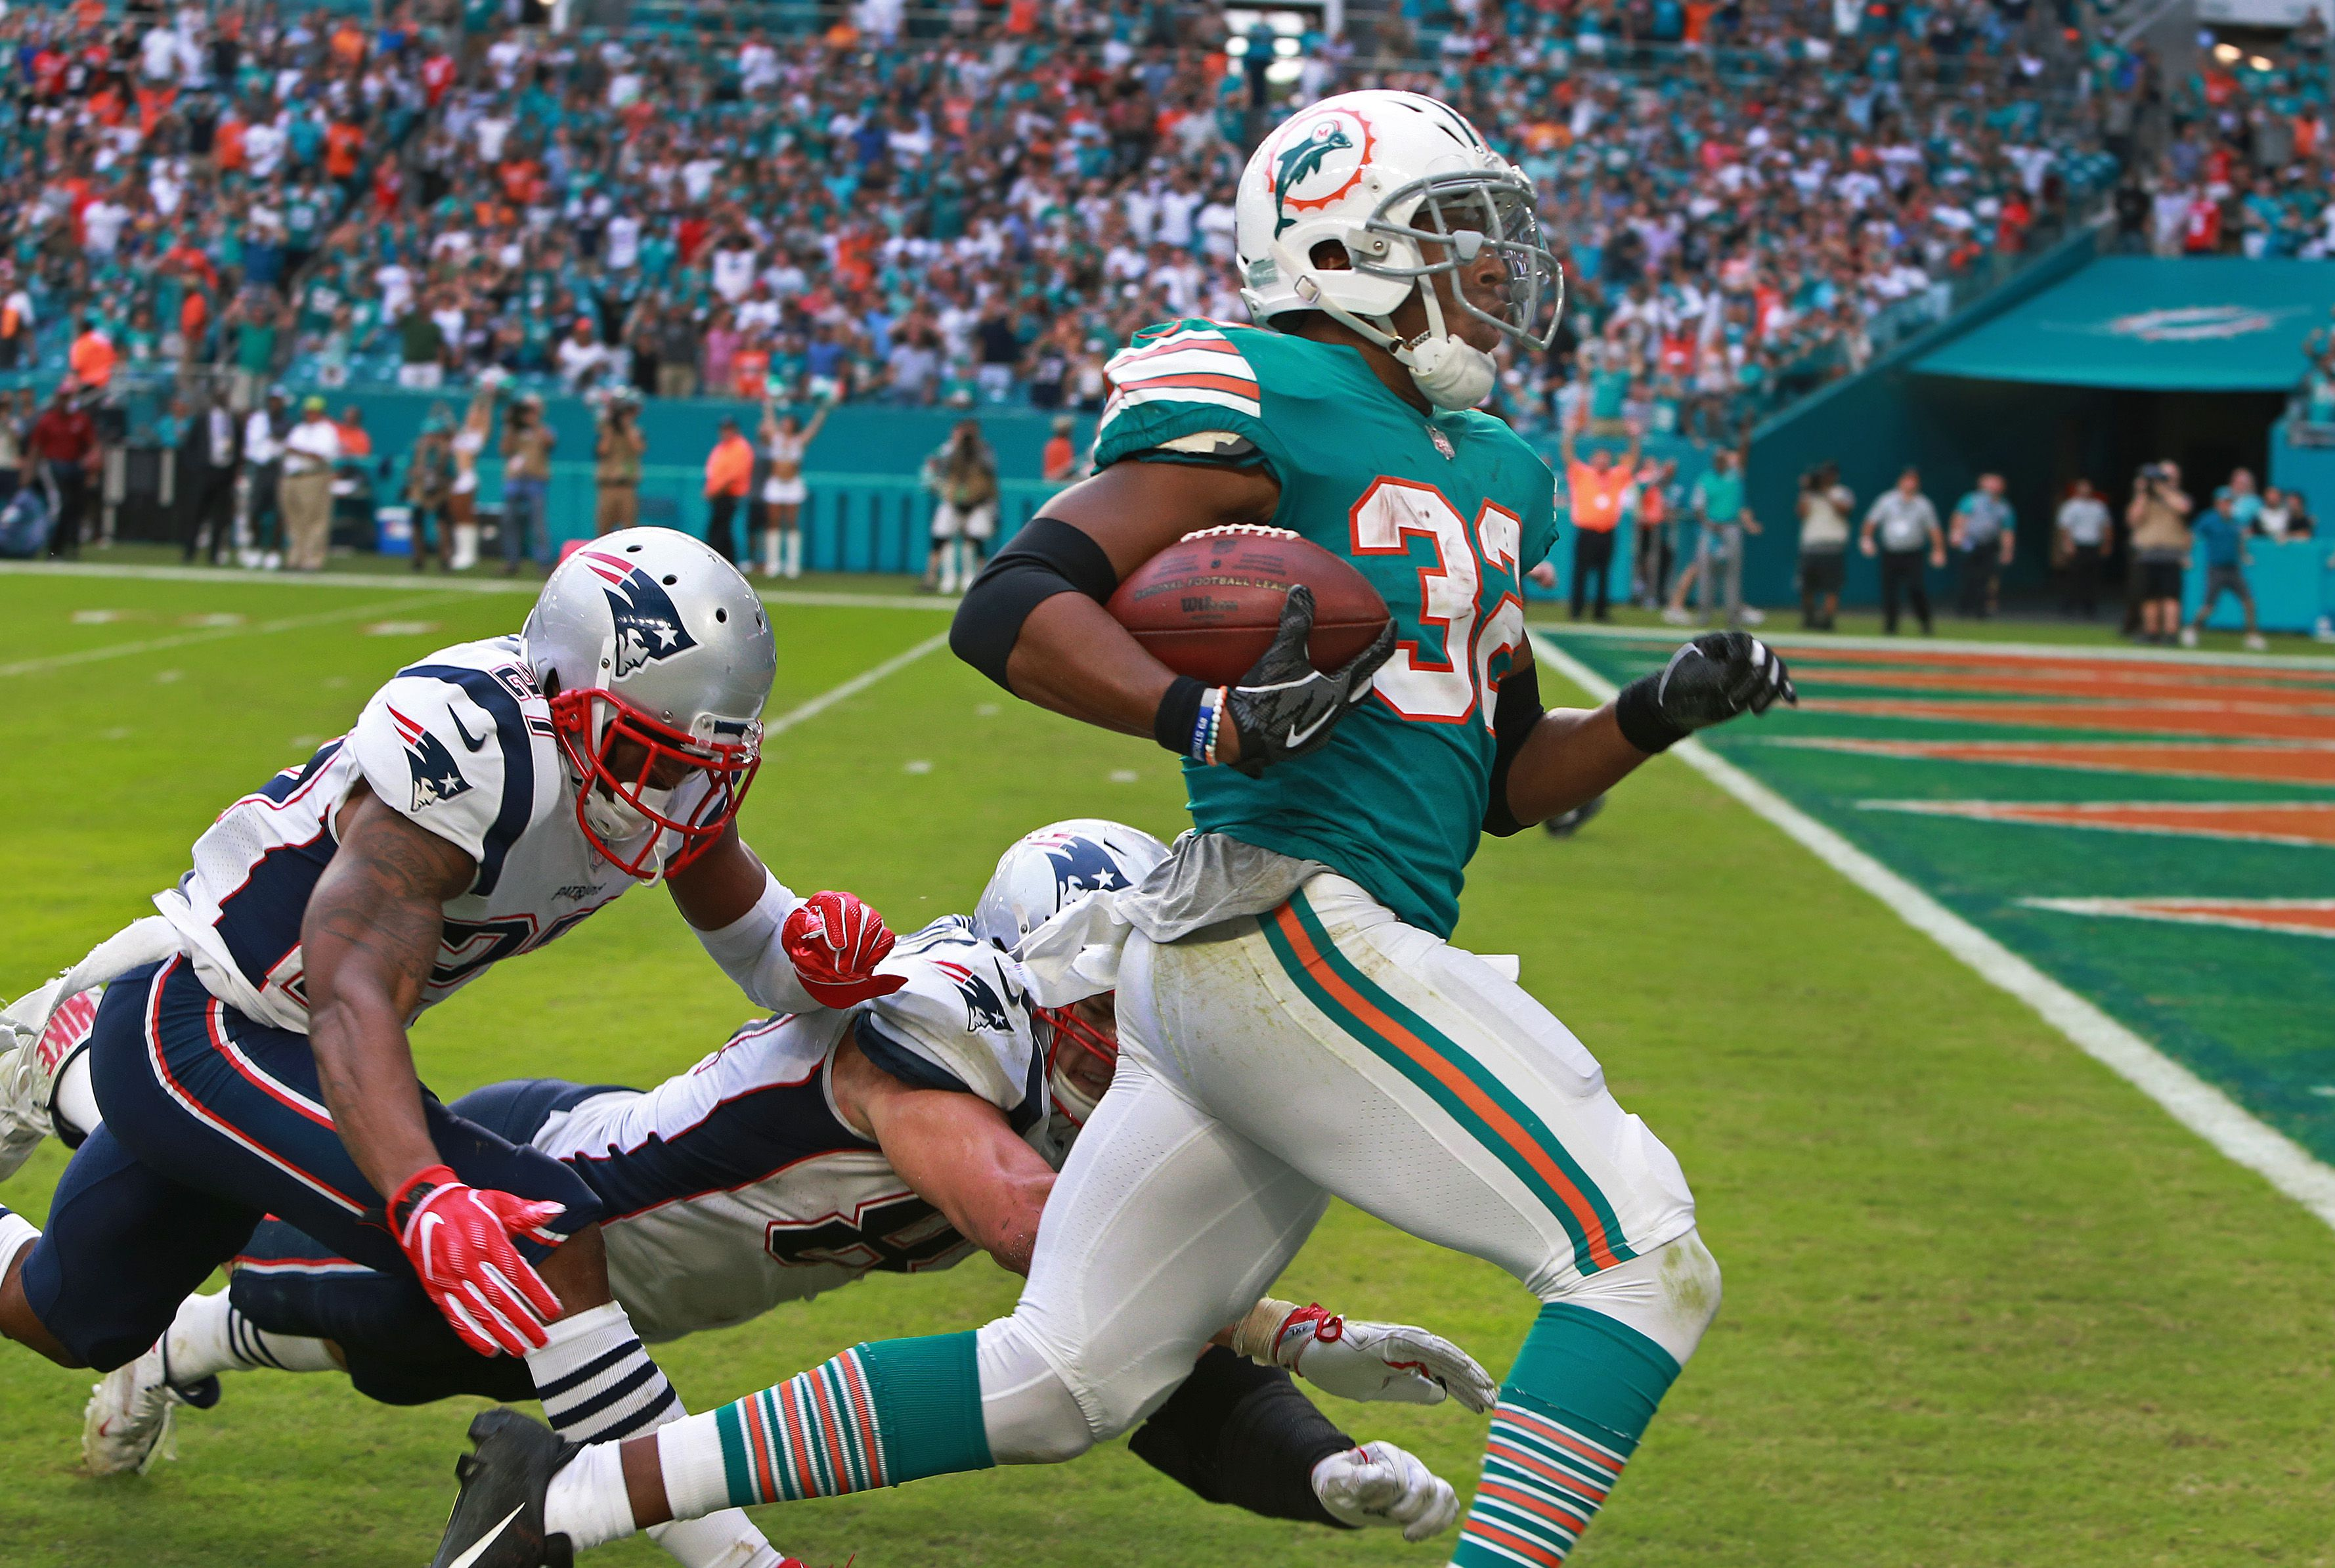 305bfe05e Patriots lose as Dolphins score improbable touchdown on final play - The  Boston Globe